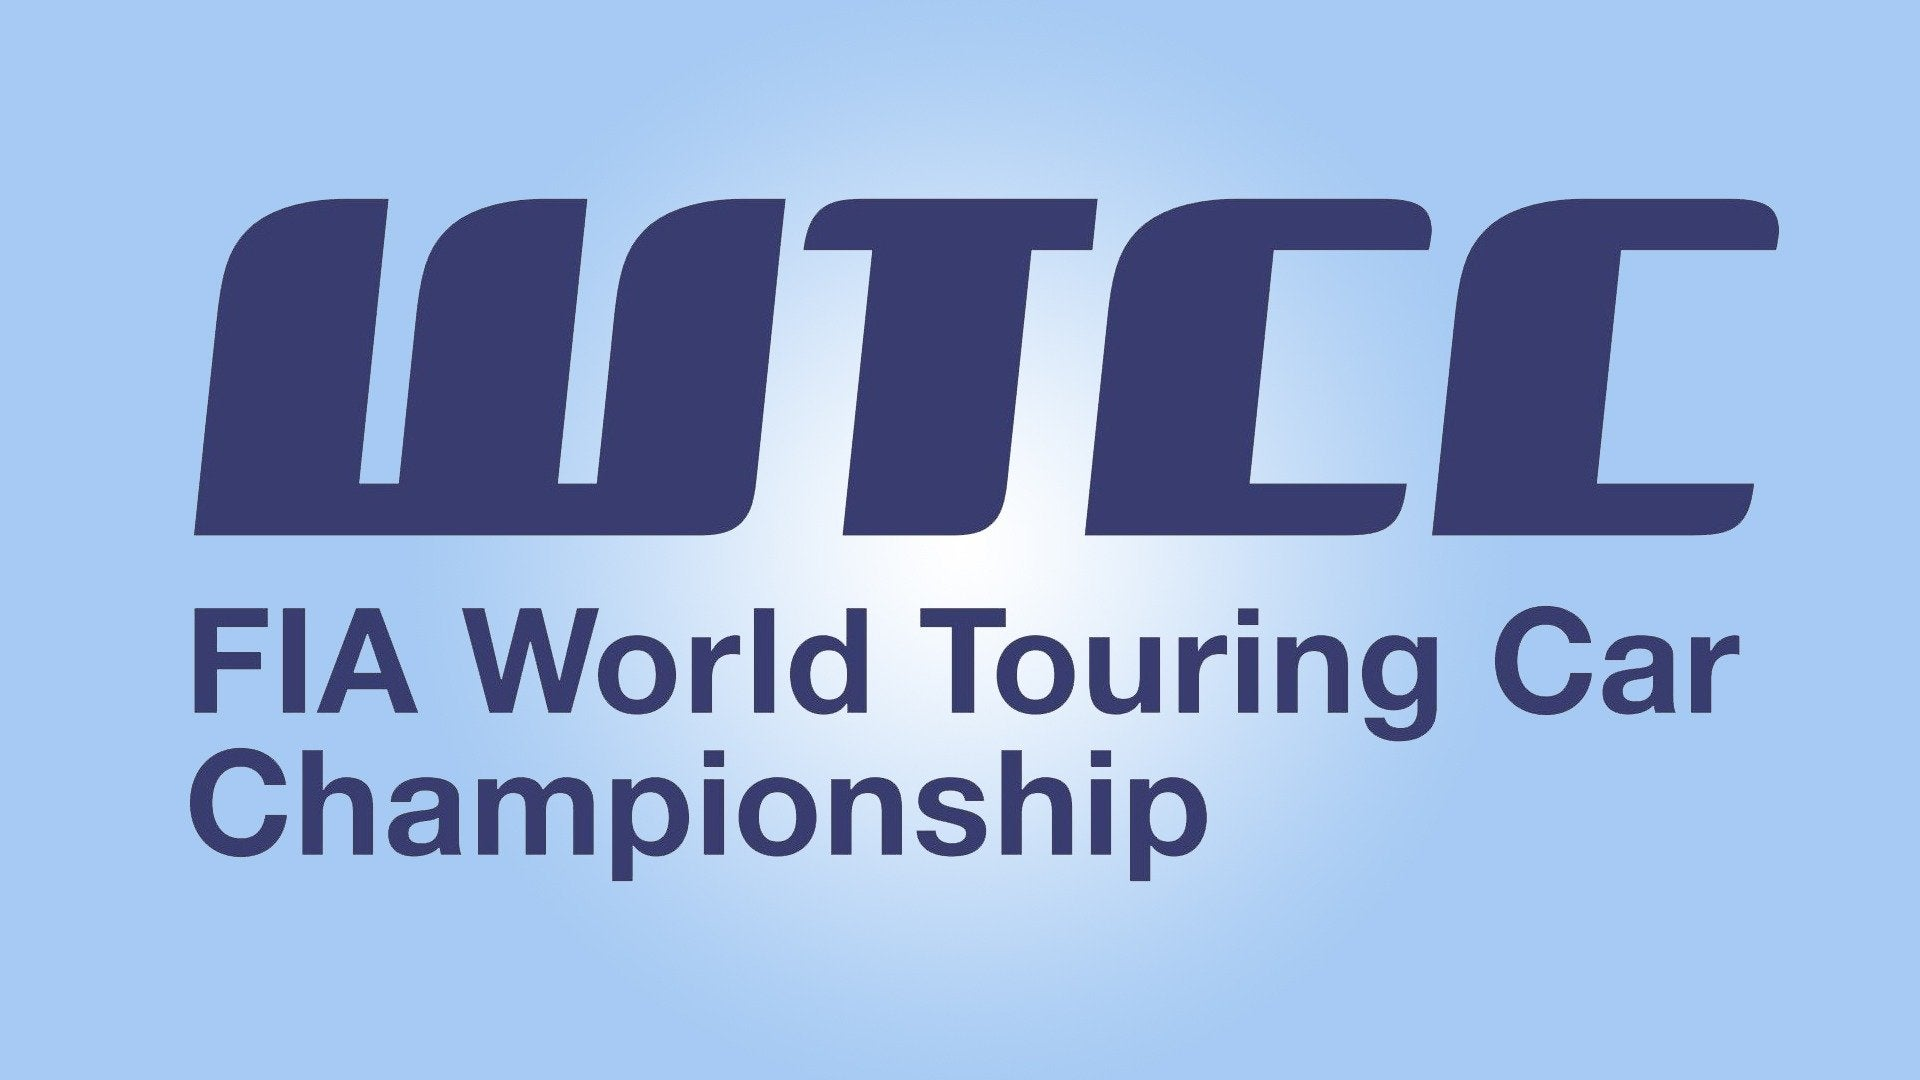 FIA World Touring Championships